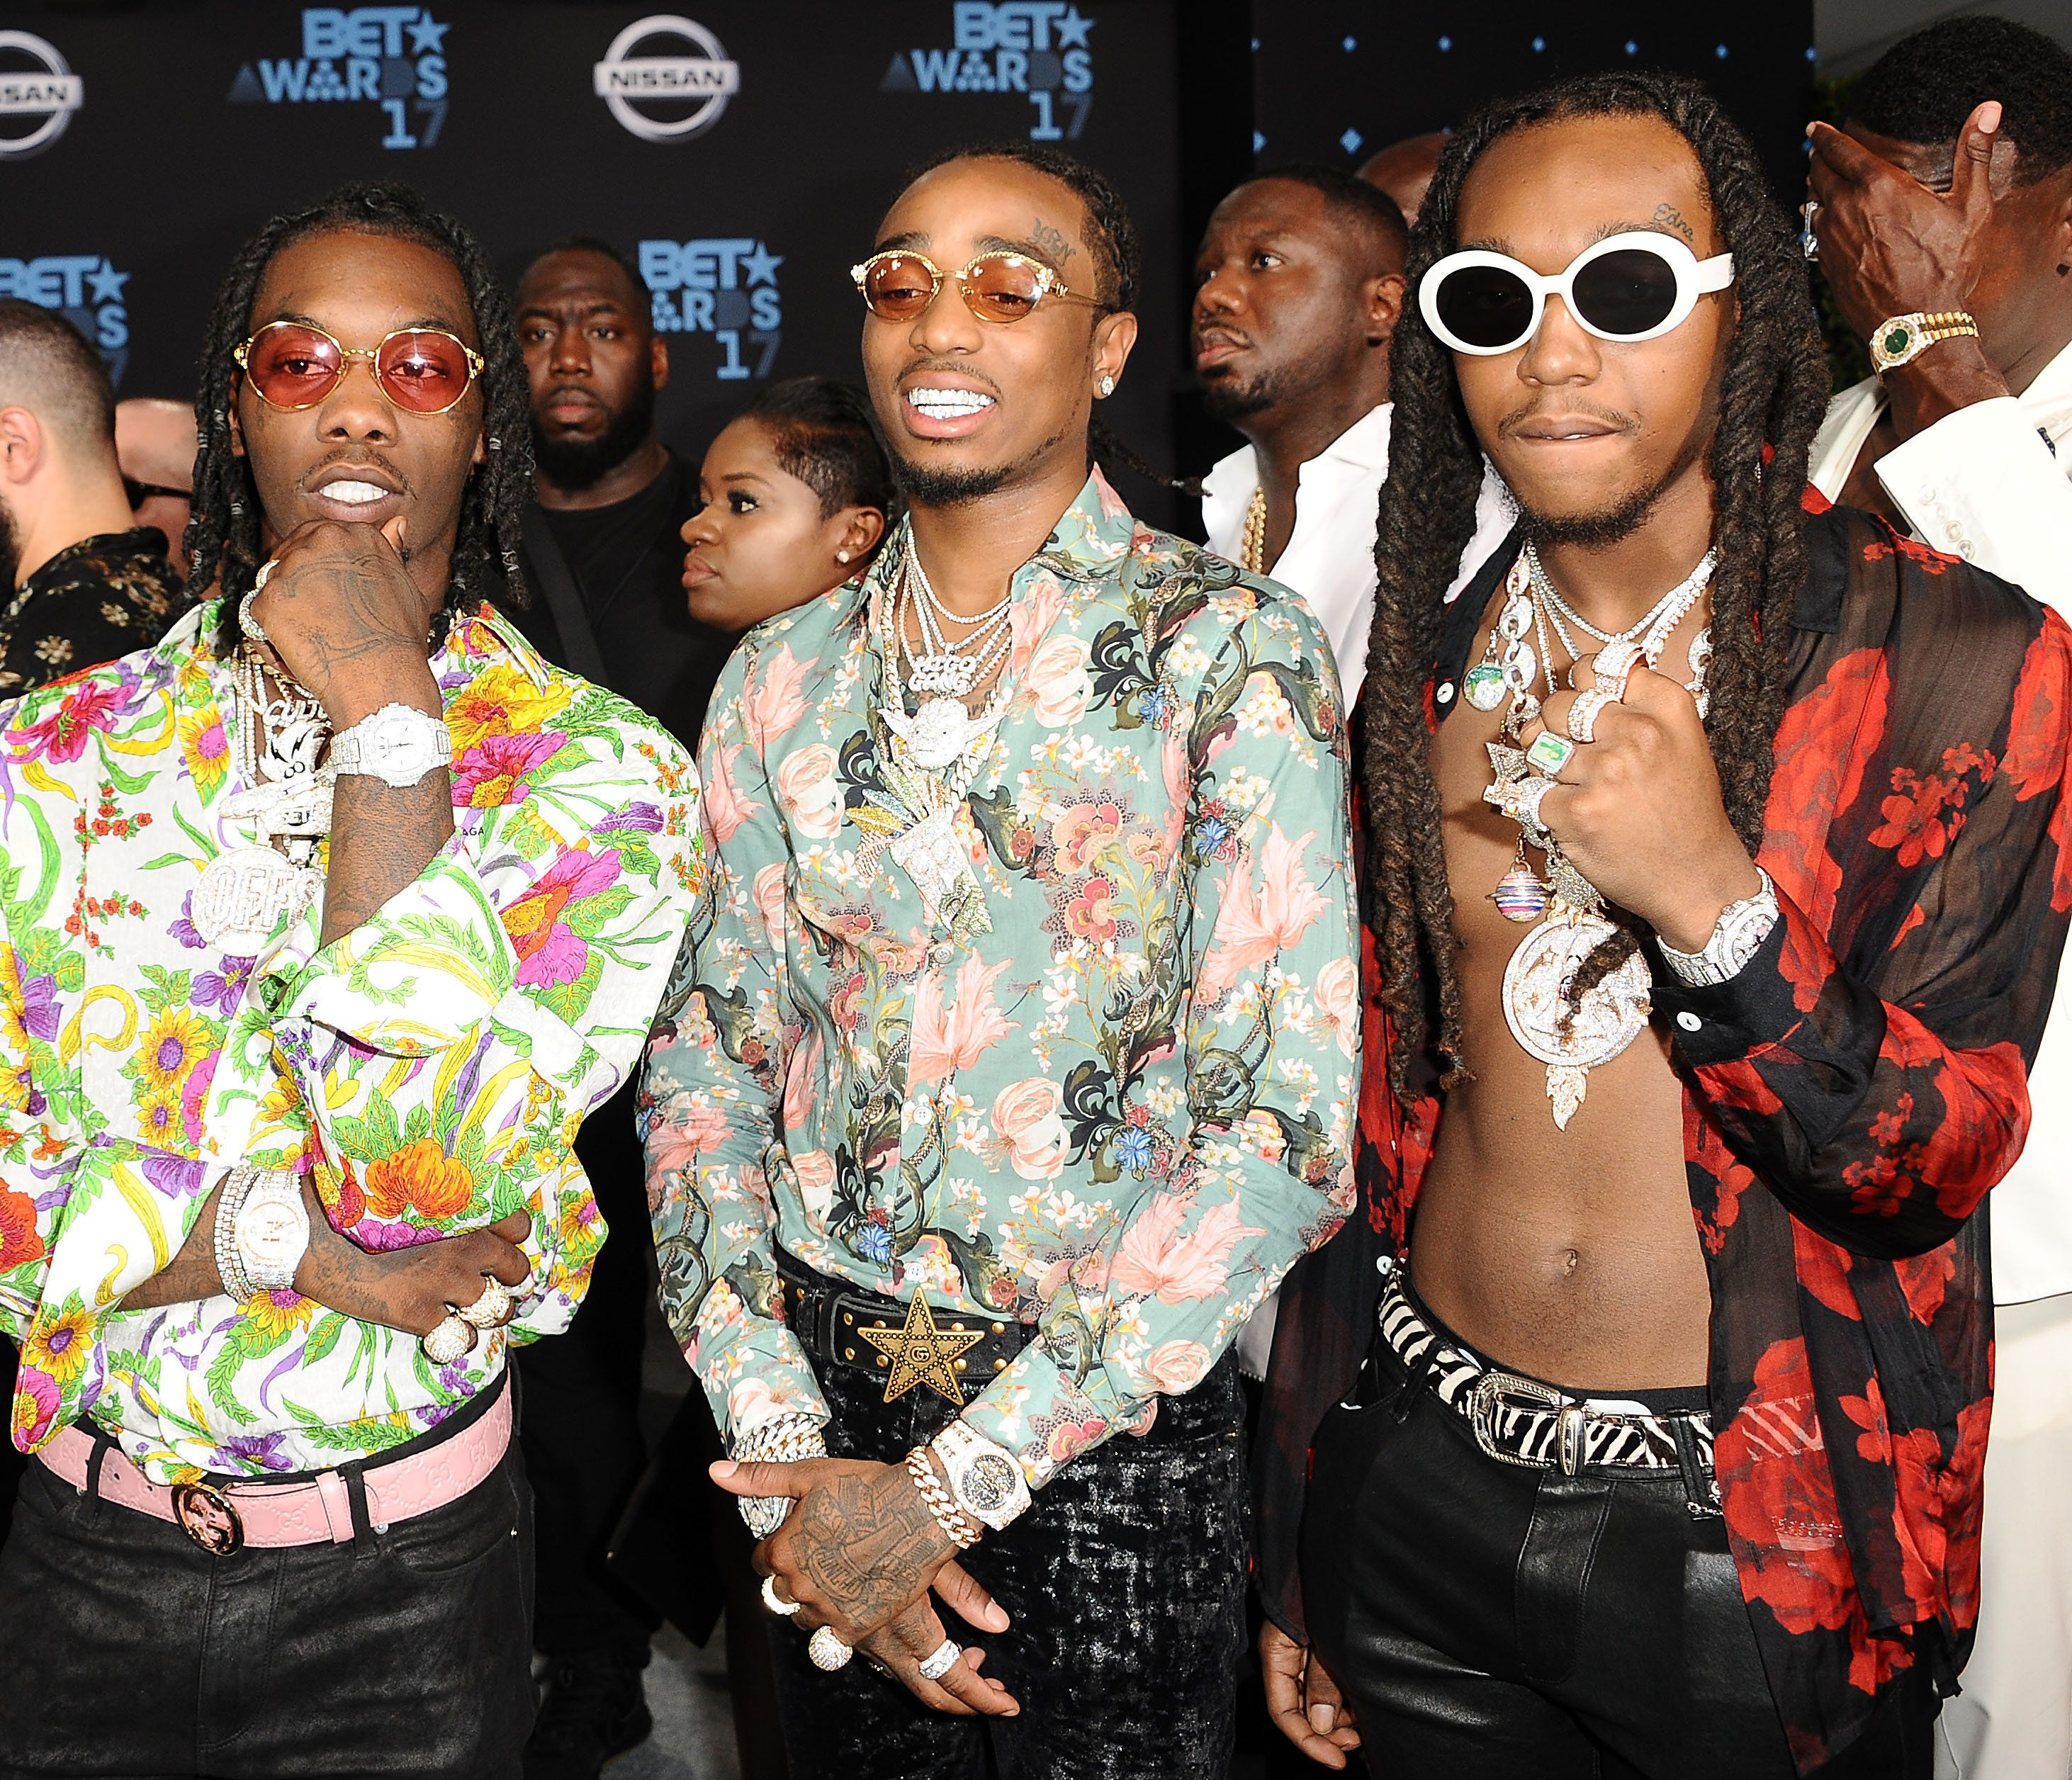 No take-off for Migos star Takeoff after plane drama